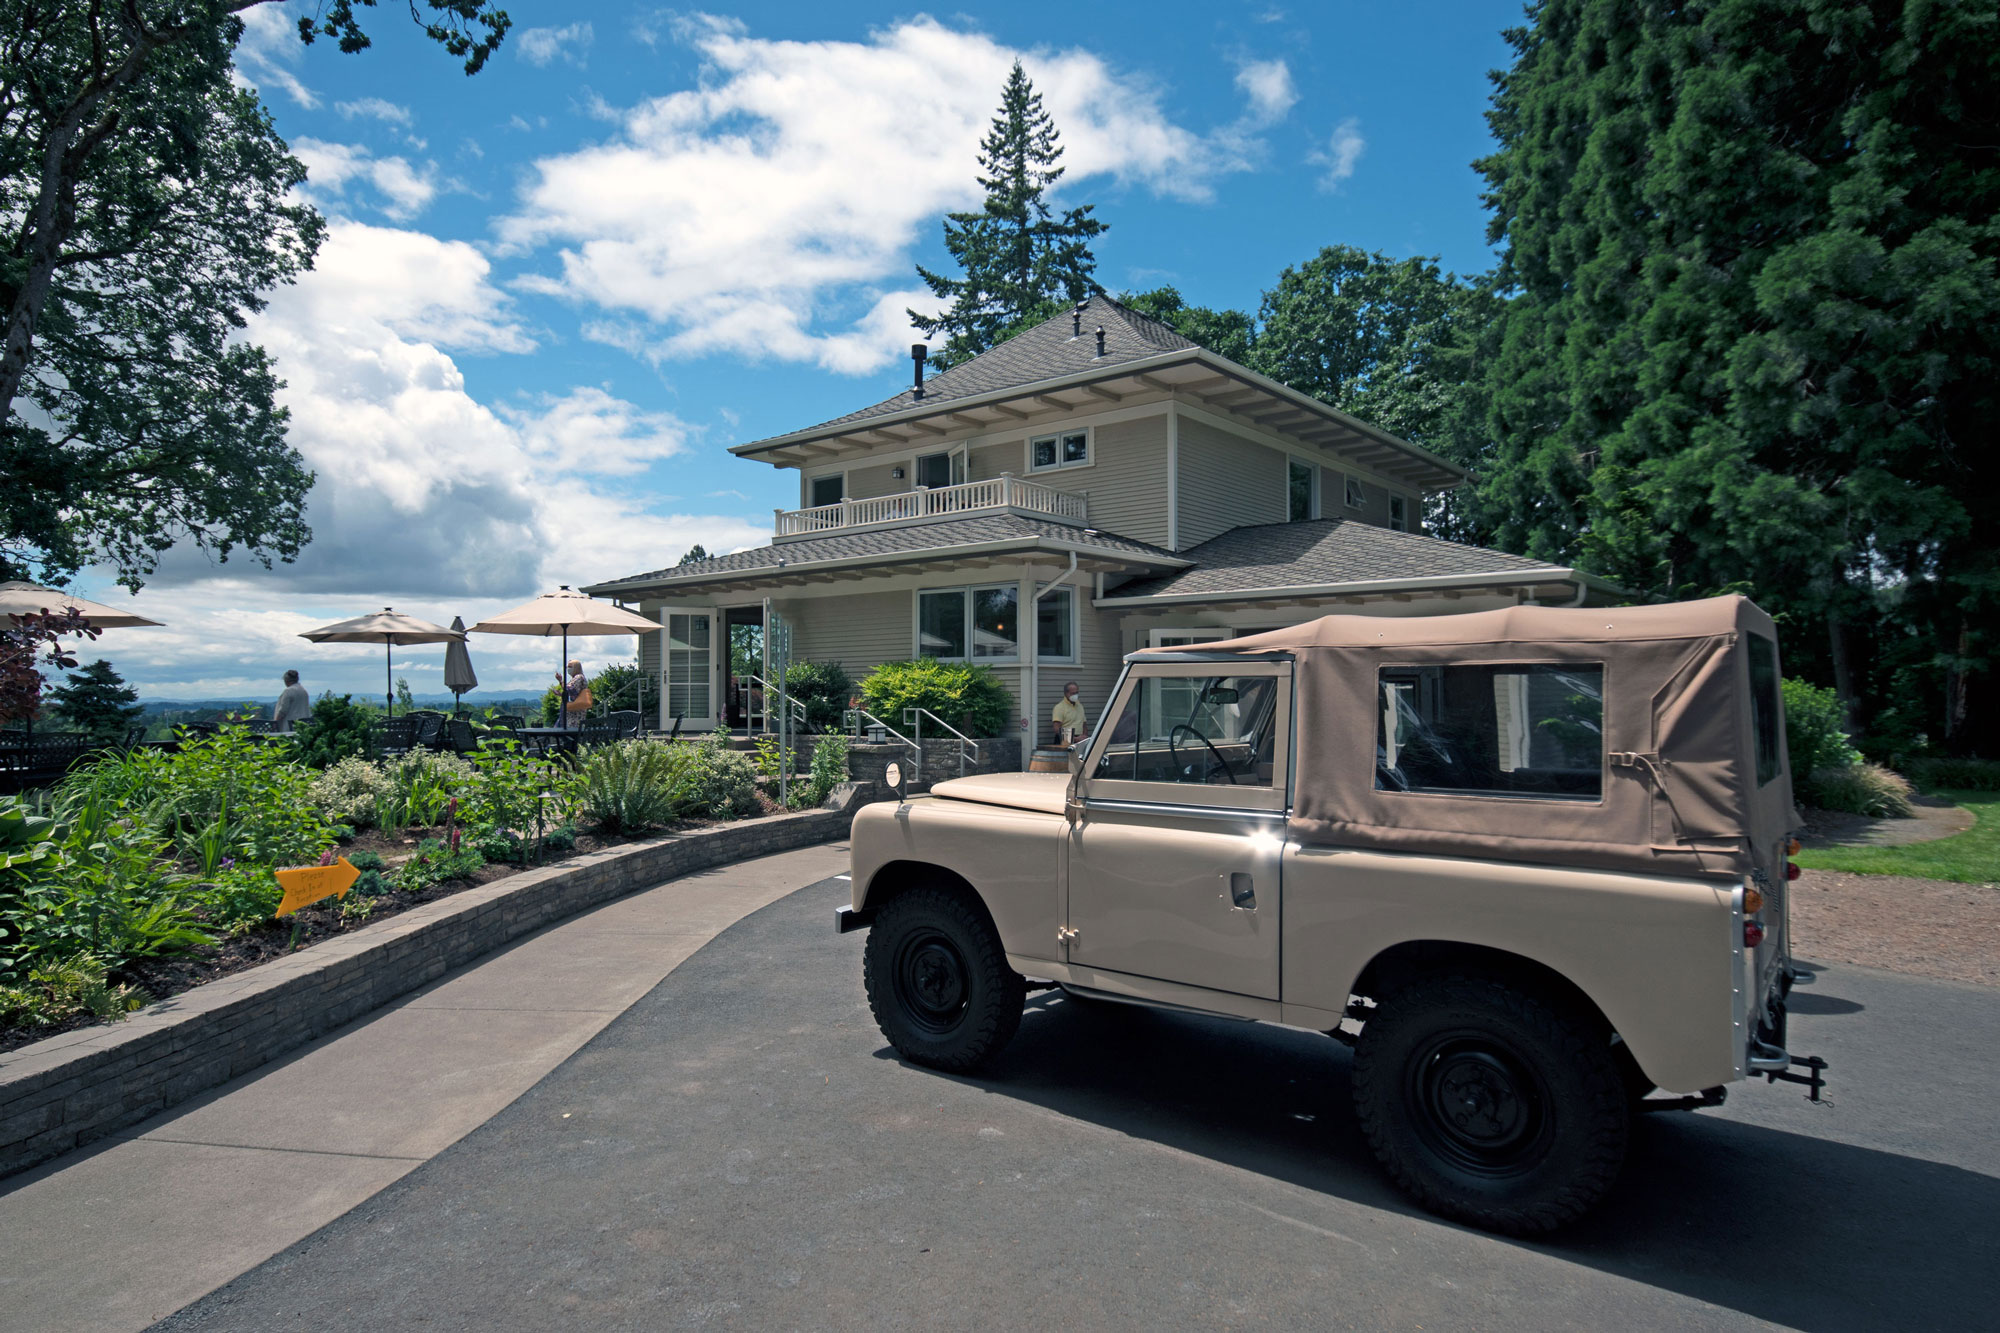 Rain Dance Vineyards Land Rover parked at the tasting room